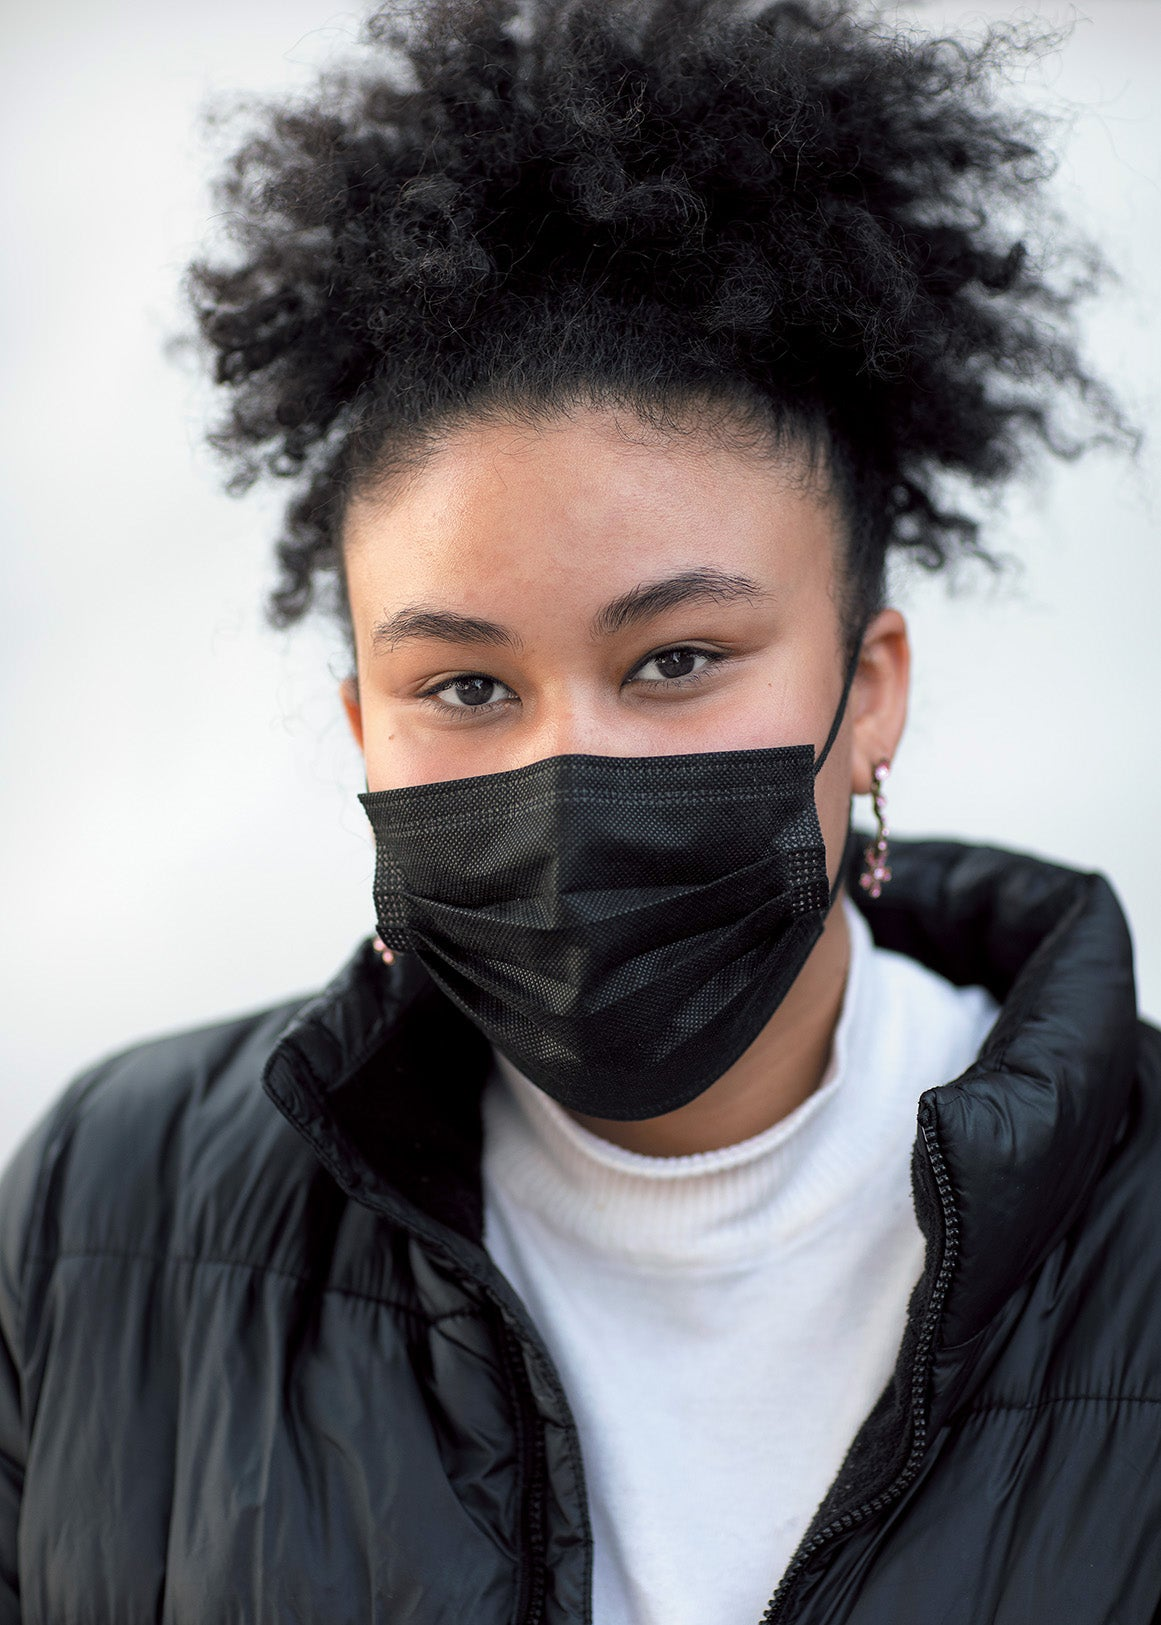 Layla Sayed, a young woman wearing a face mask.